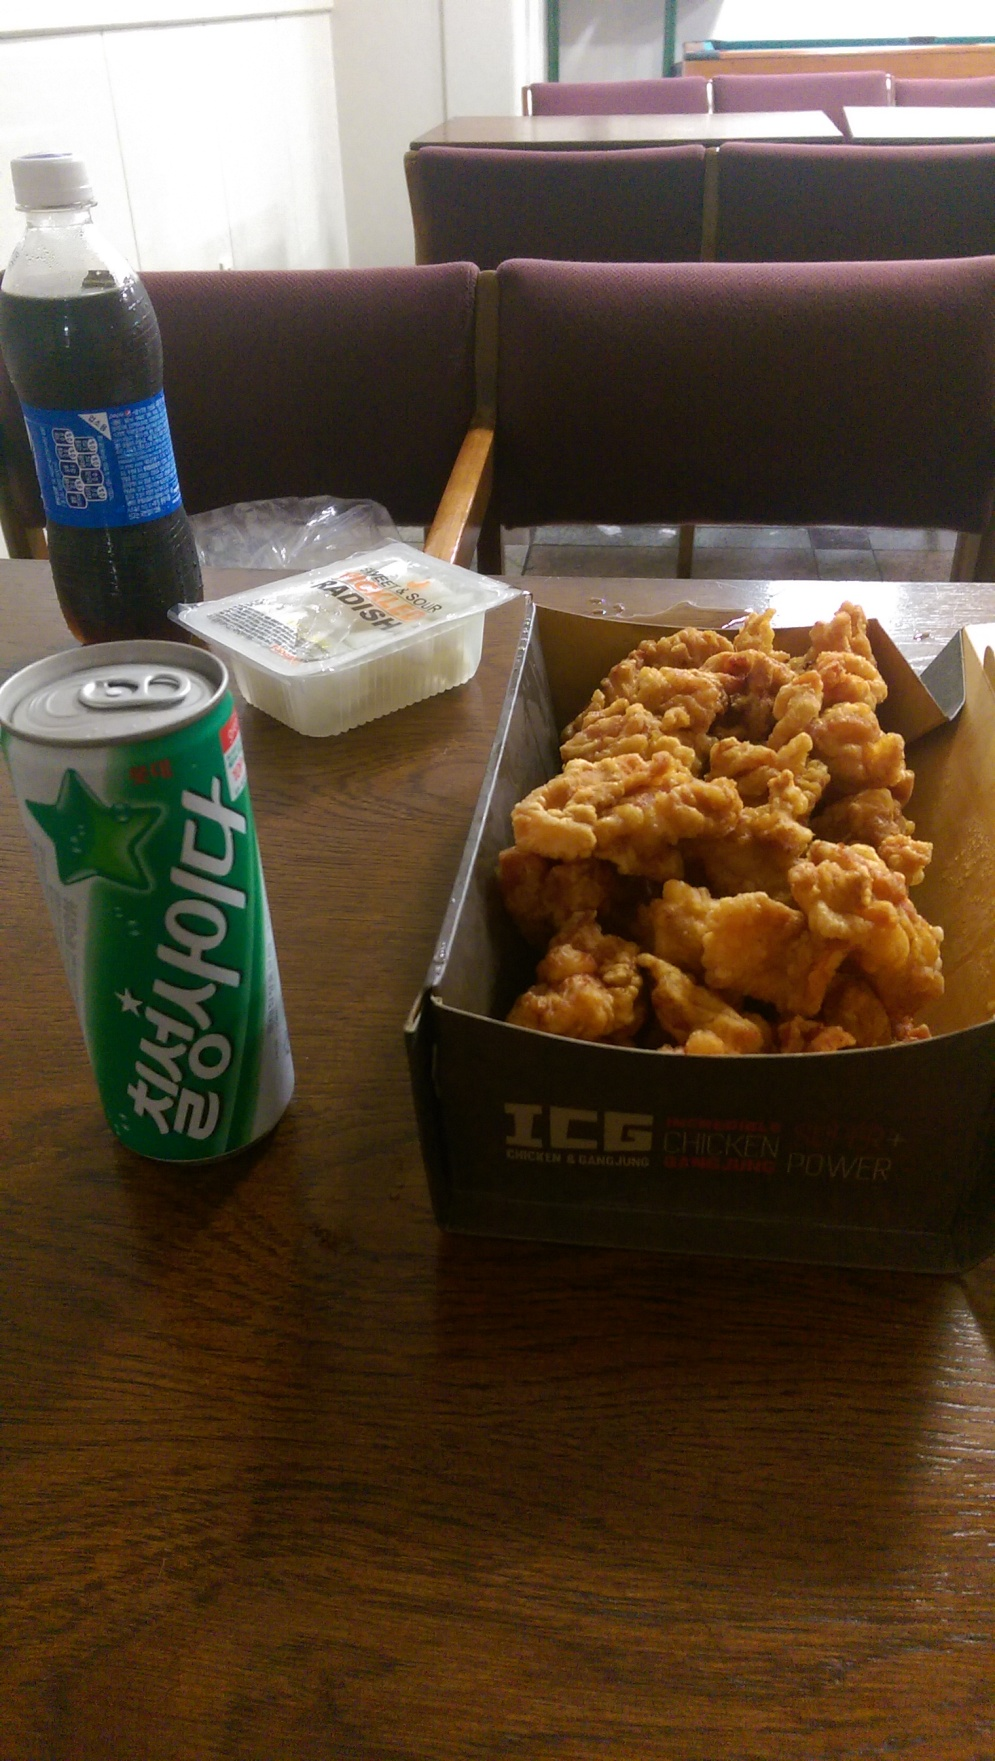 Cider (non-alcoholic, surprisingly: it taste like sprite) and fried chicken.